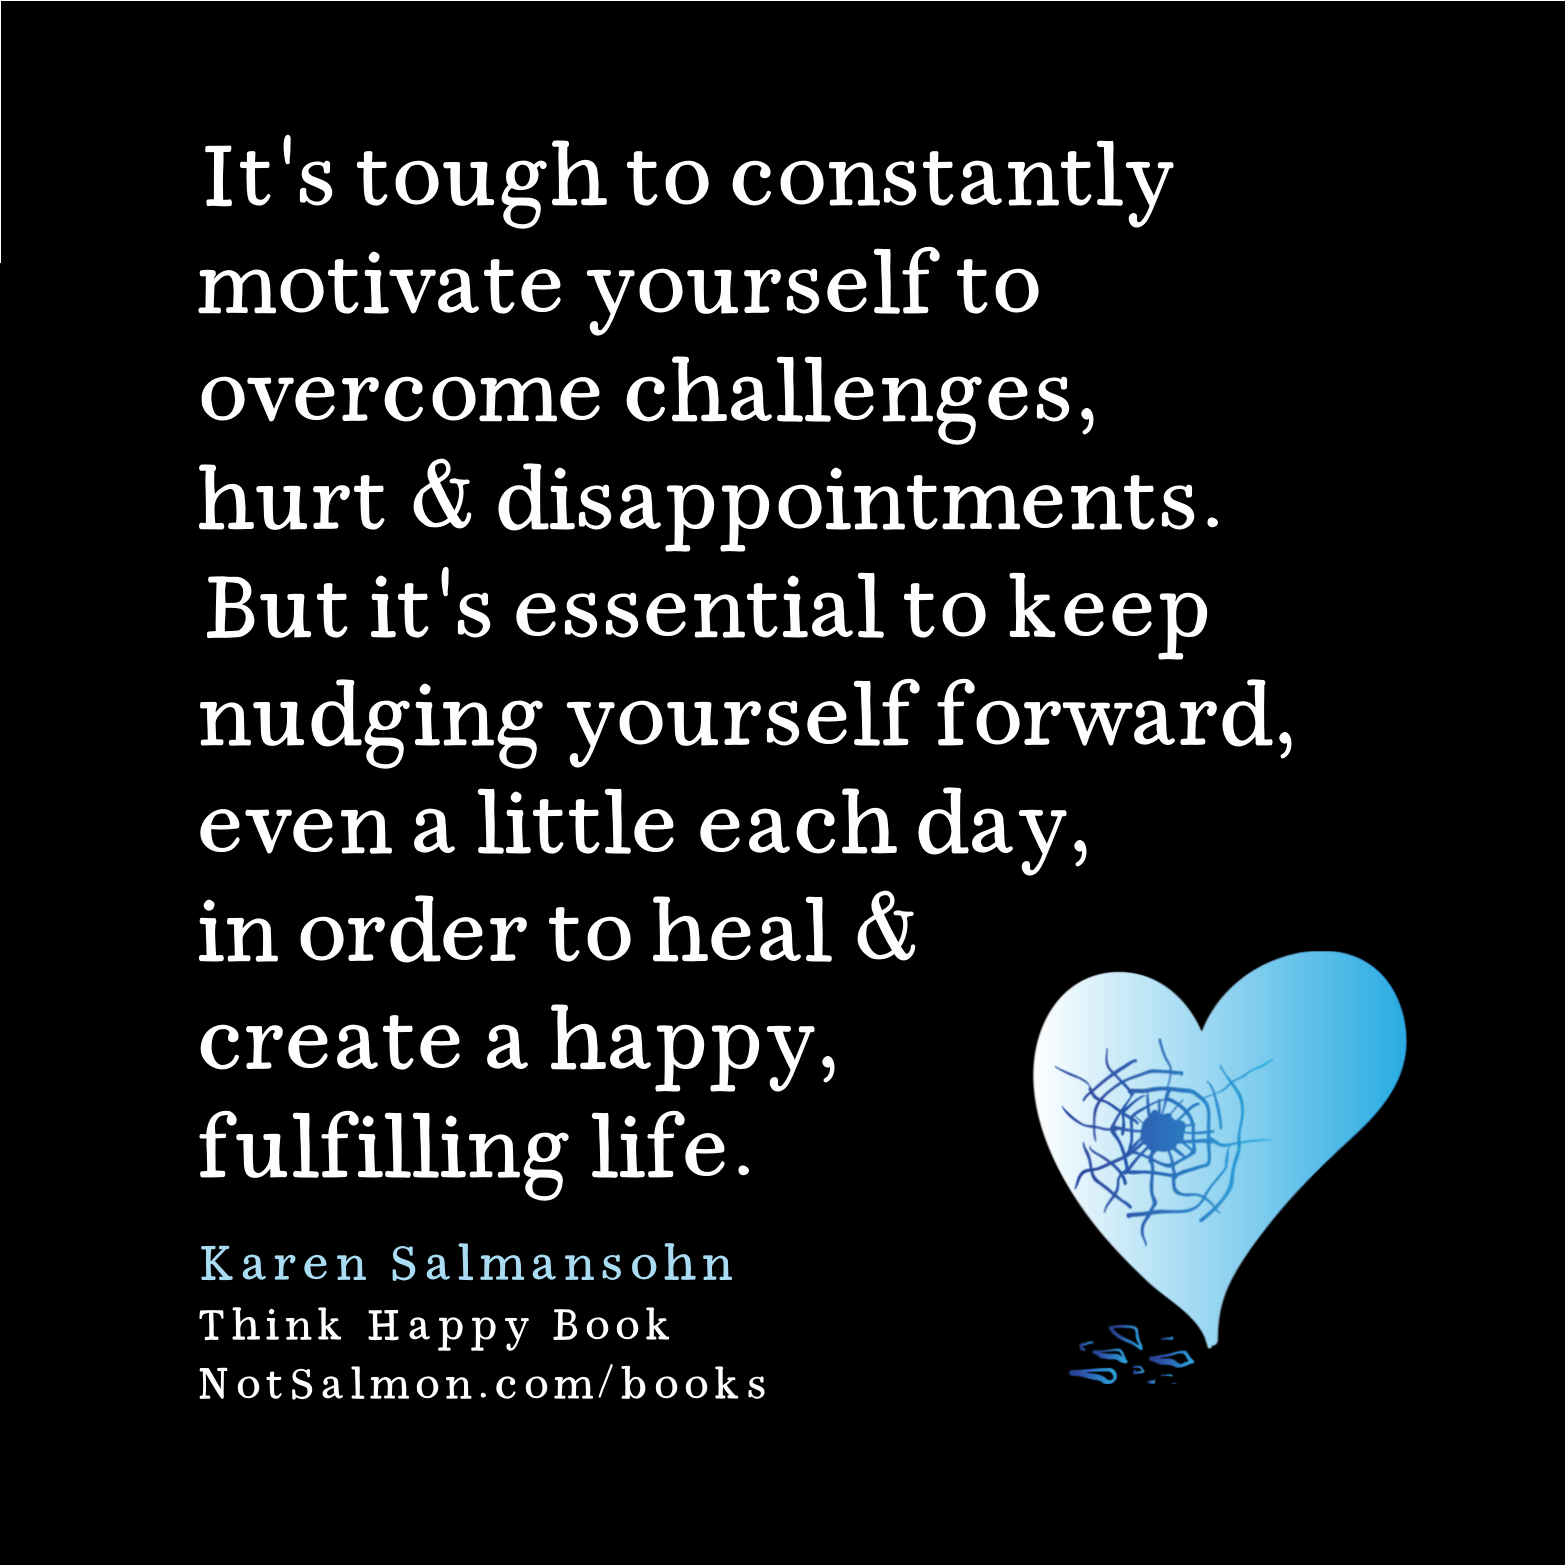 tough to constantly motivate yourself to overcome challenges hurt disappointment